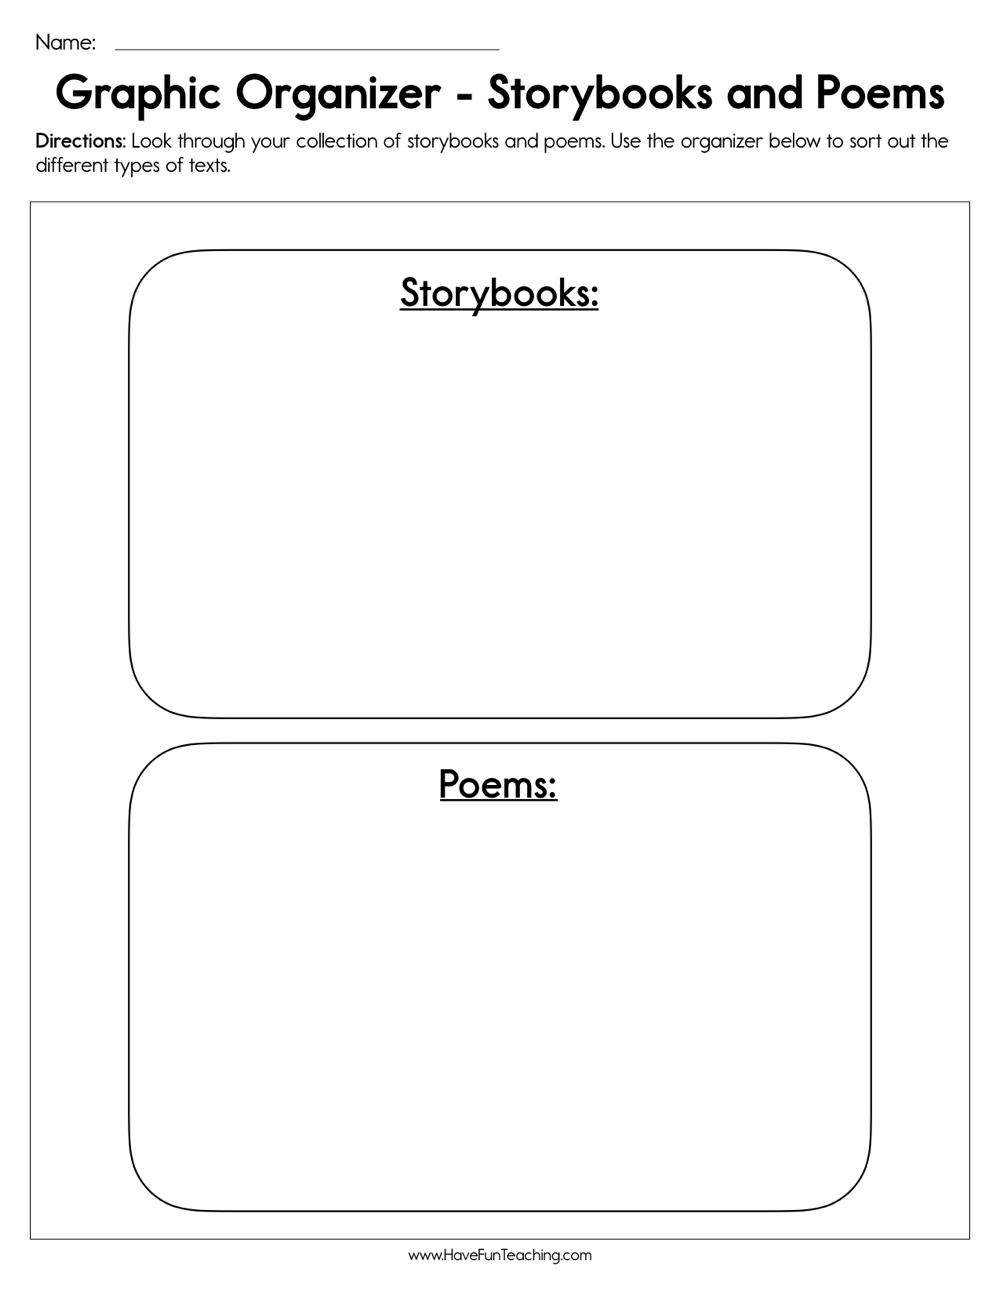 Story Books and Poems Graphic Organizer Worksheet